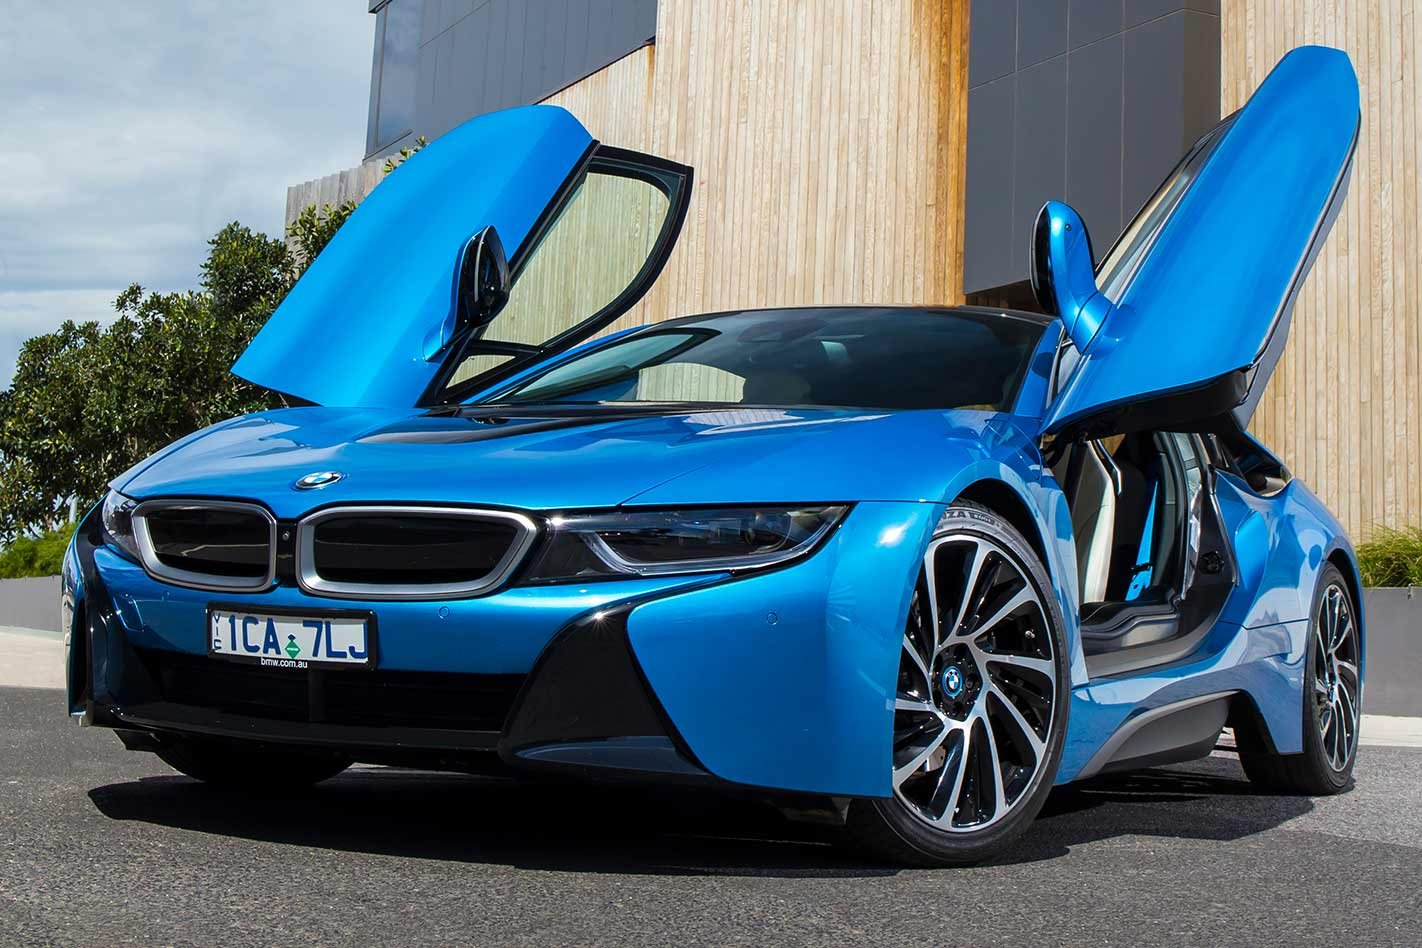 How The Bmw I8 Was Driven To Extinction